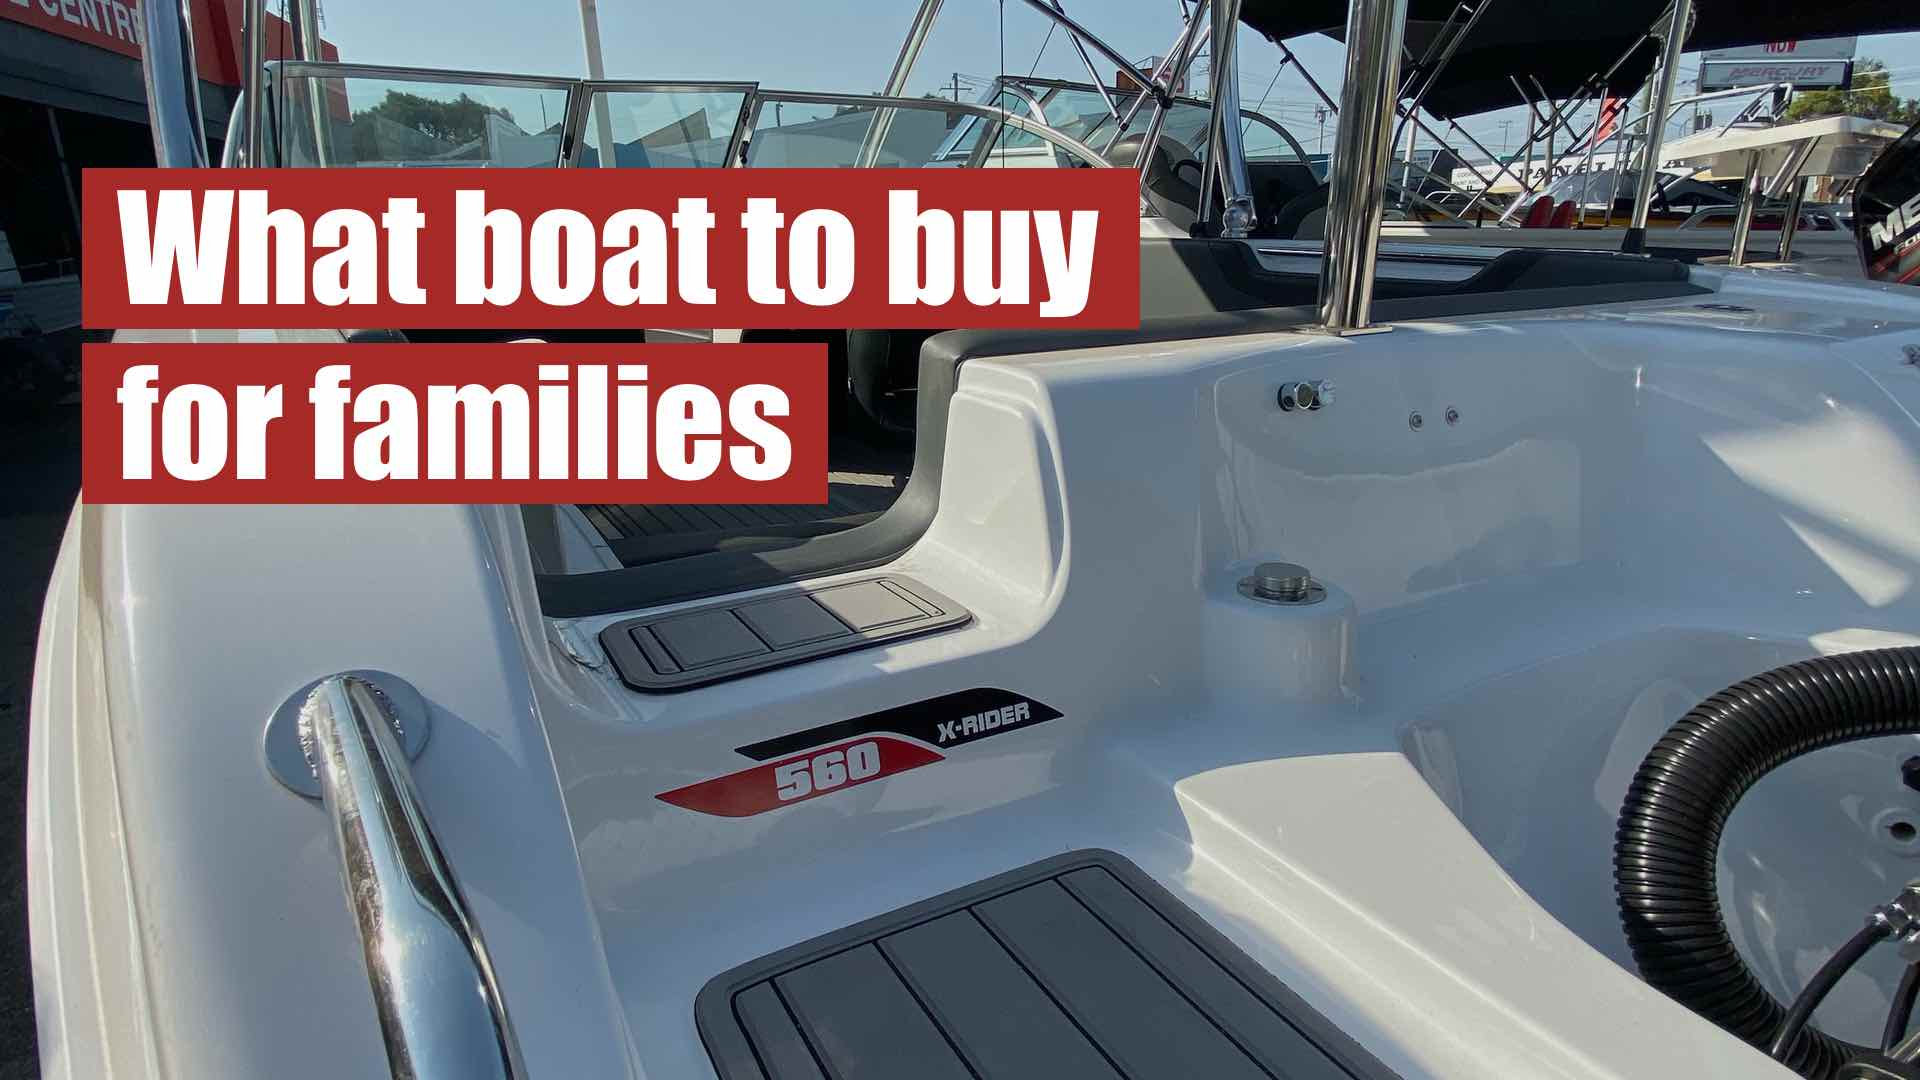 Boating Guides: What Boat To Buy For Families